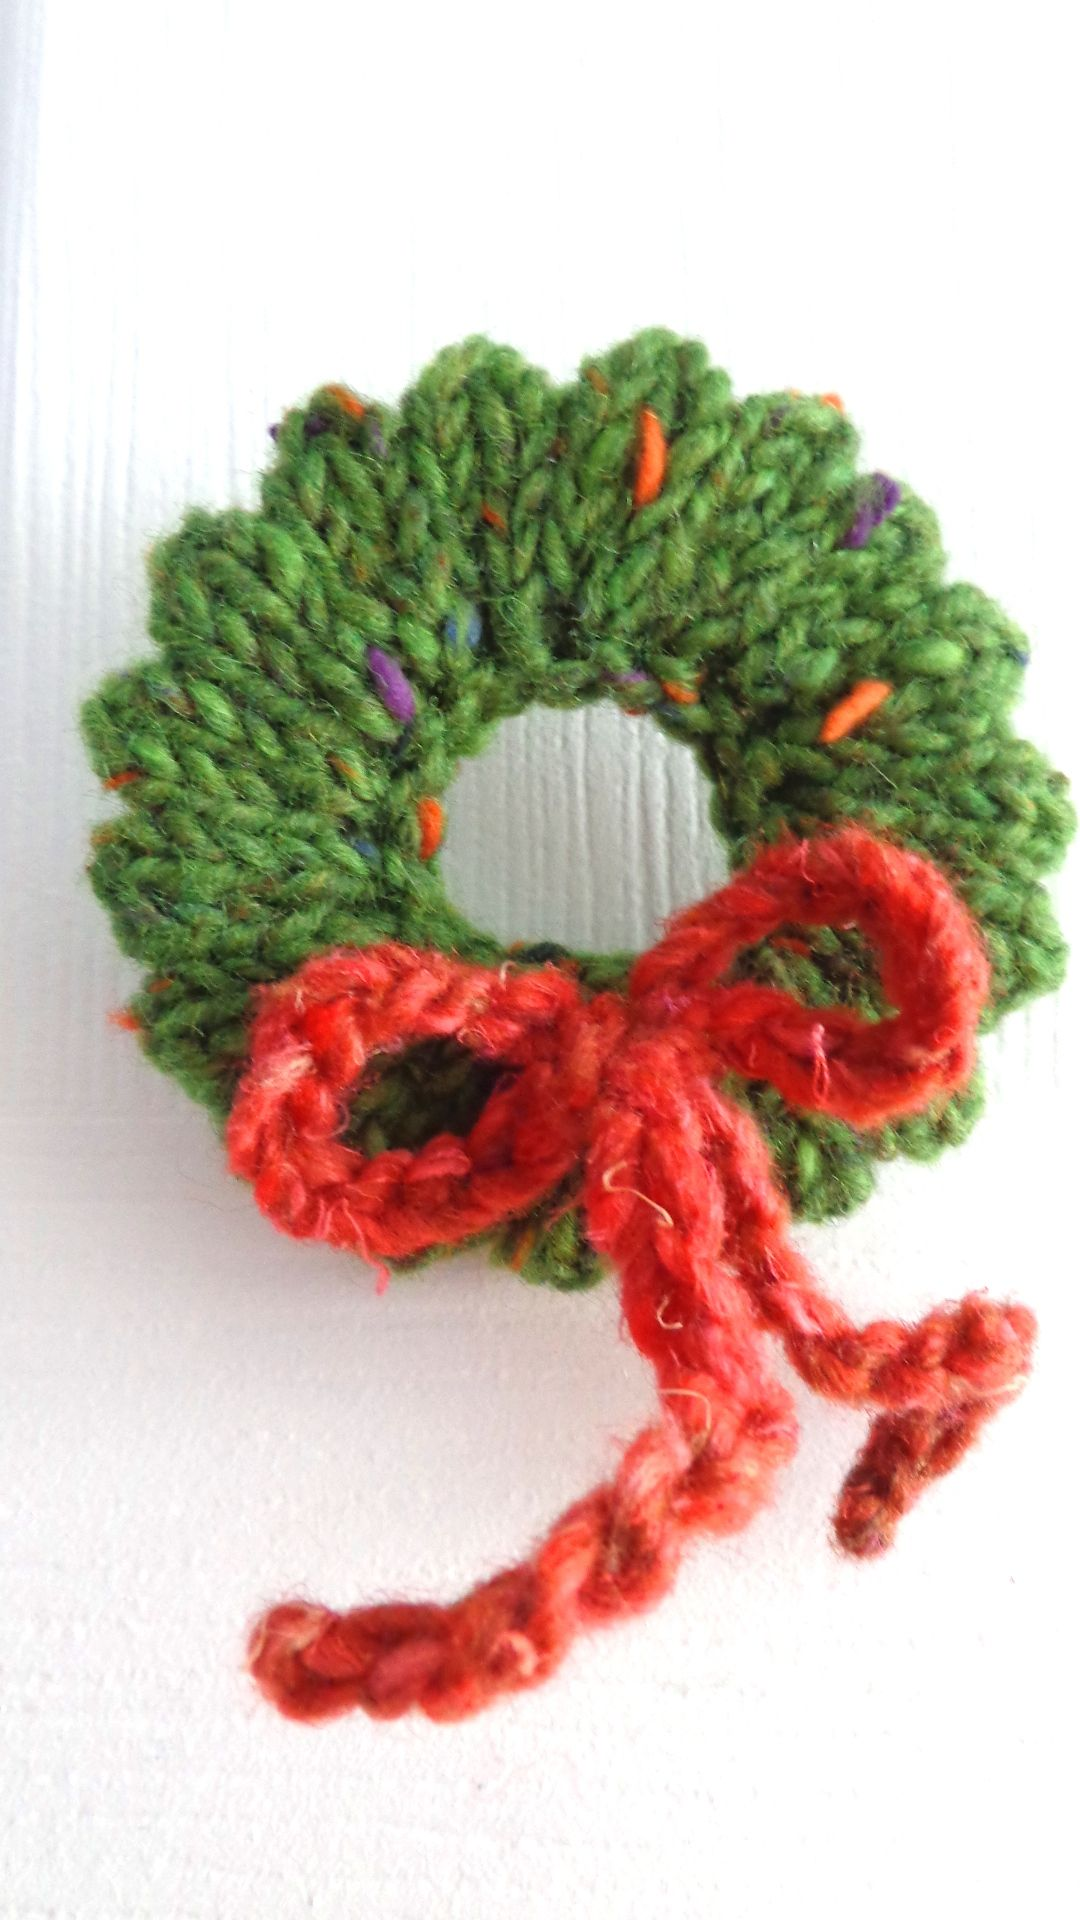 Knitted mini wreath christmas ornament so cute but no pattern knitted mini wreath christmas ornament so cute but no pattern string on fishing bankloansurffo Images